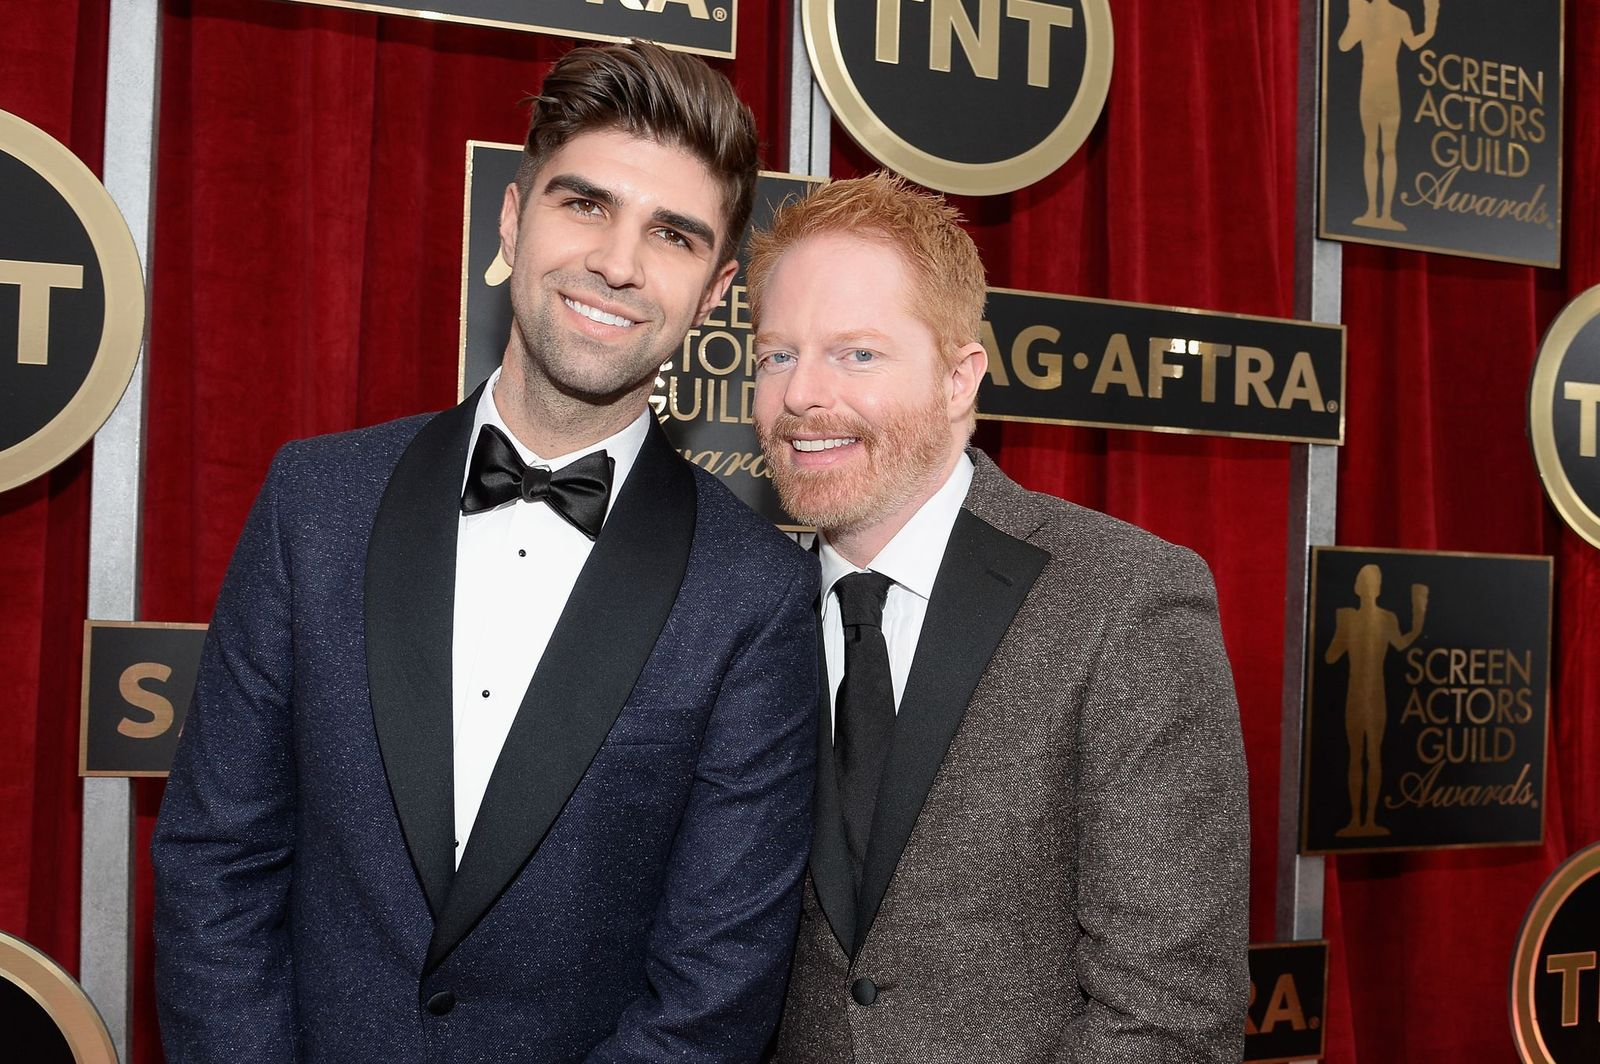 Justin Mikita and Jesse Tyler Ferguson atthe 21st Annual Screen Actors Guild Awards at The Shrine Auditorium on January 25, 2015, in Los Angeles, California | Photo: Kevork Djansezian/Getty Images